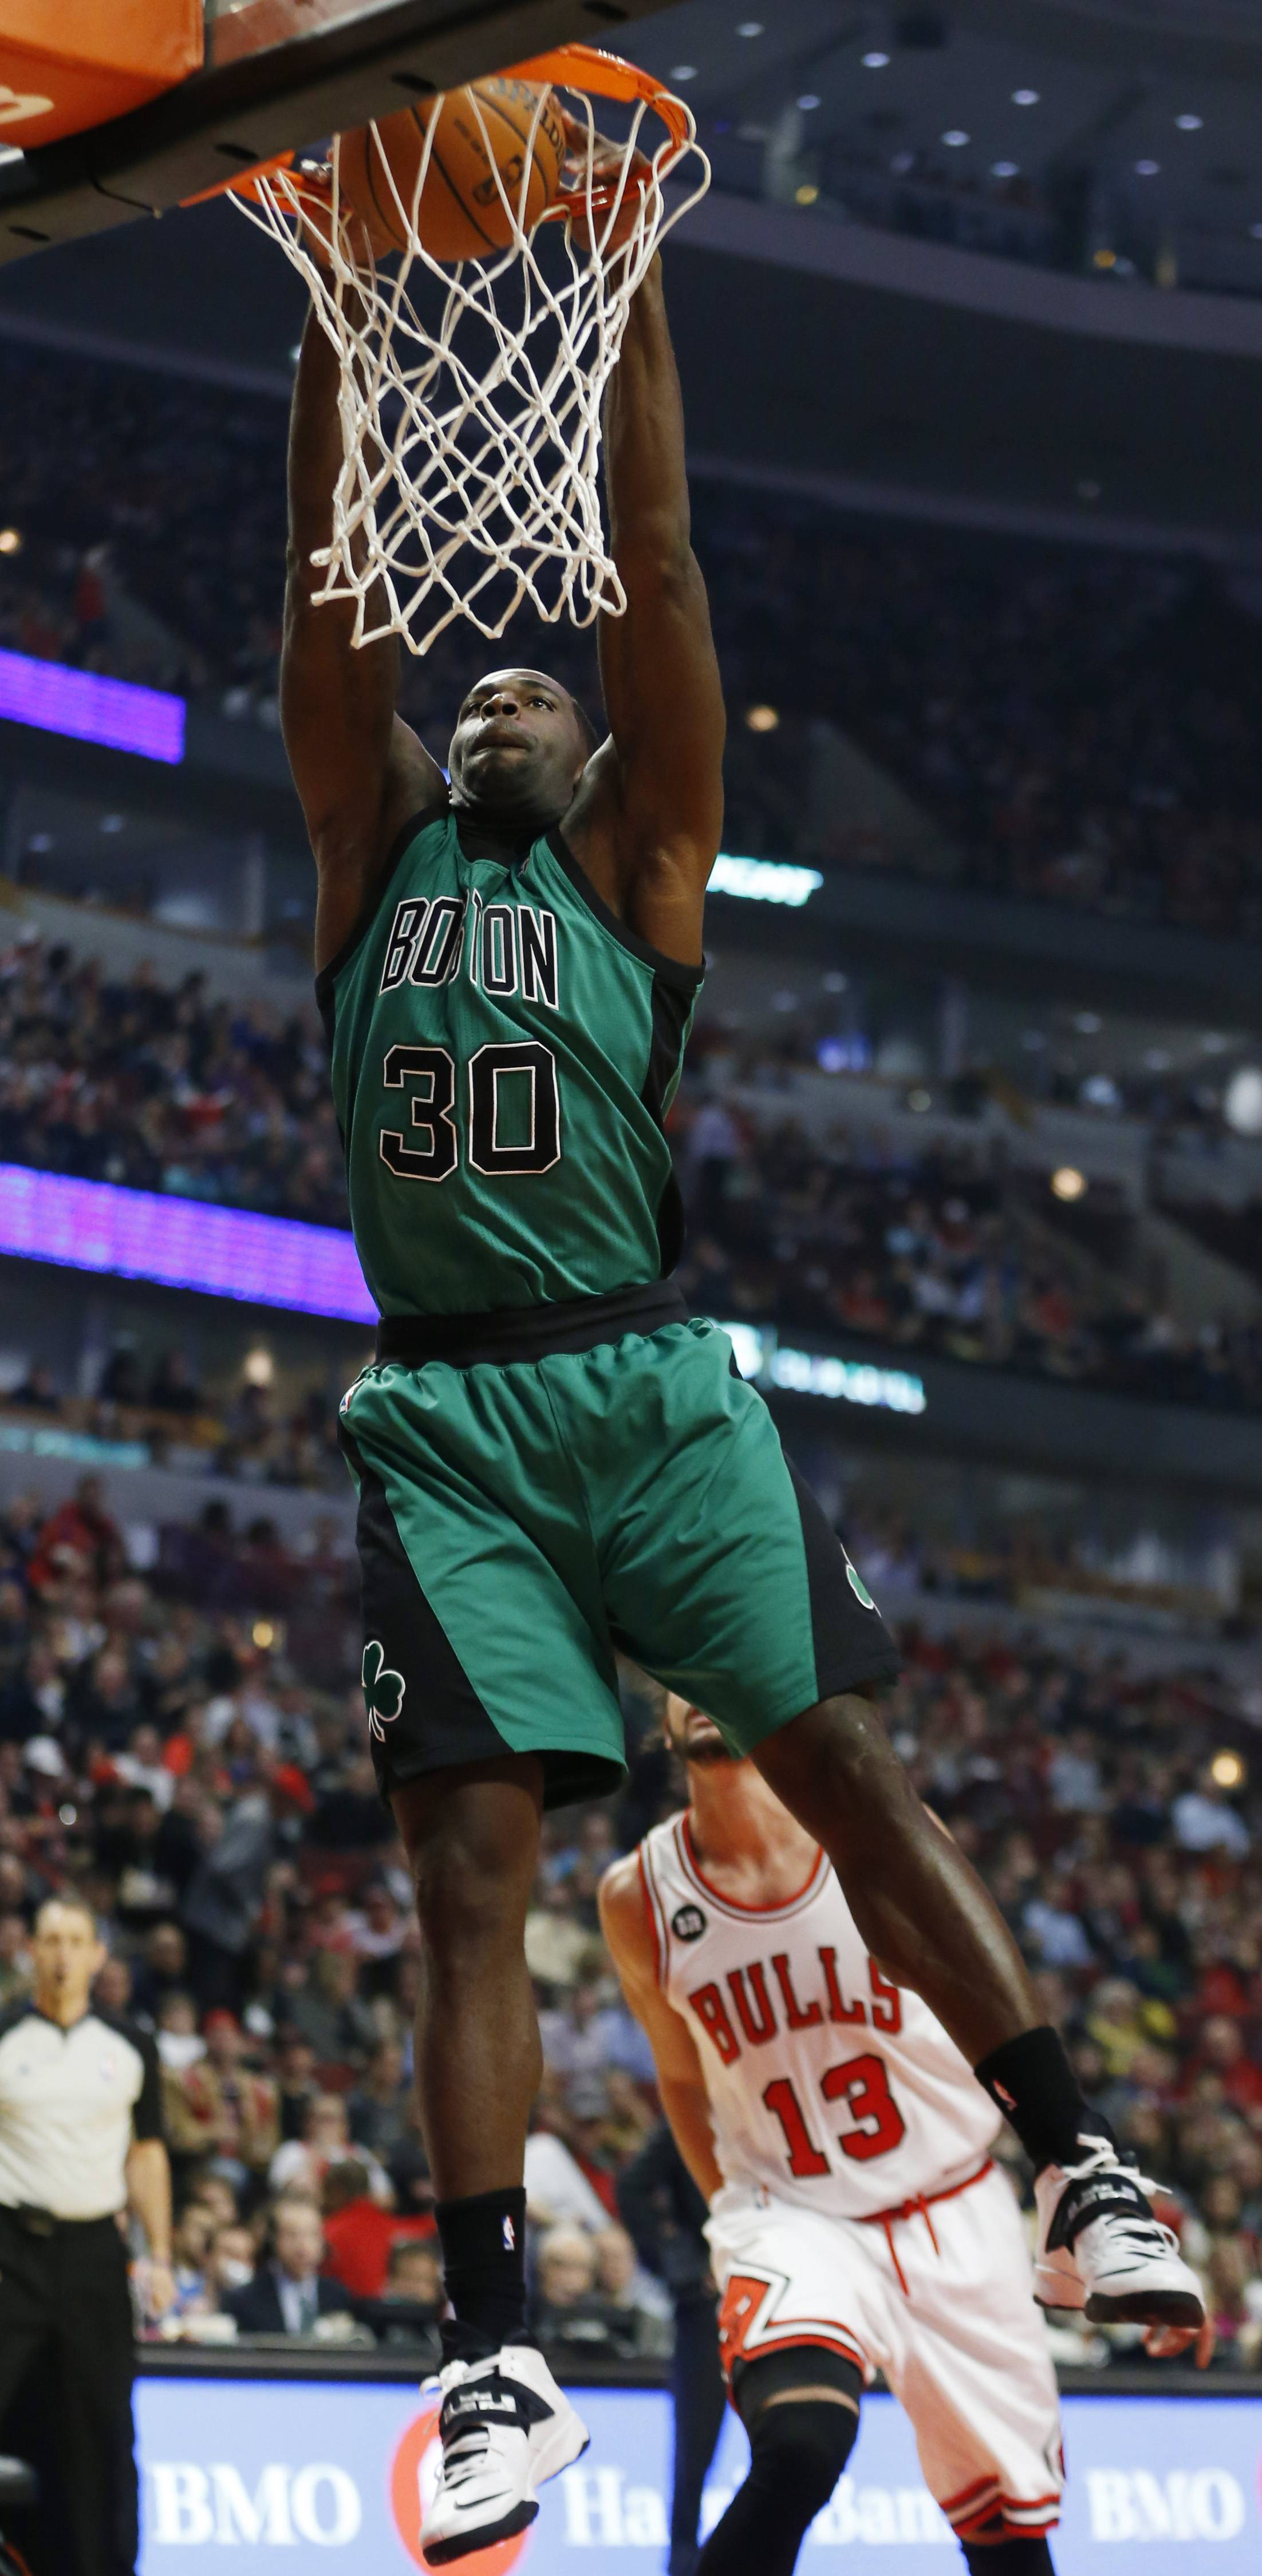 Boston Celtics forward Brandon Bass dunks against the Chicago Bulls during the first half of an NBA basketball game in Chicago, Monday, March 31, 2014.